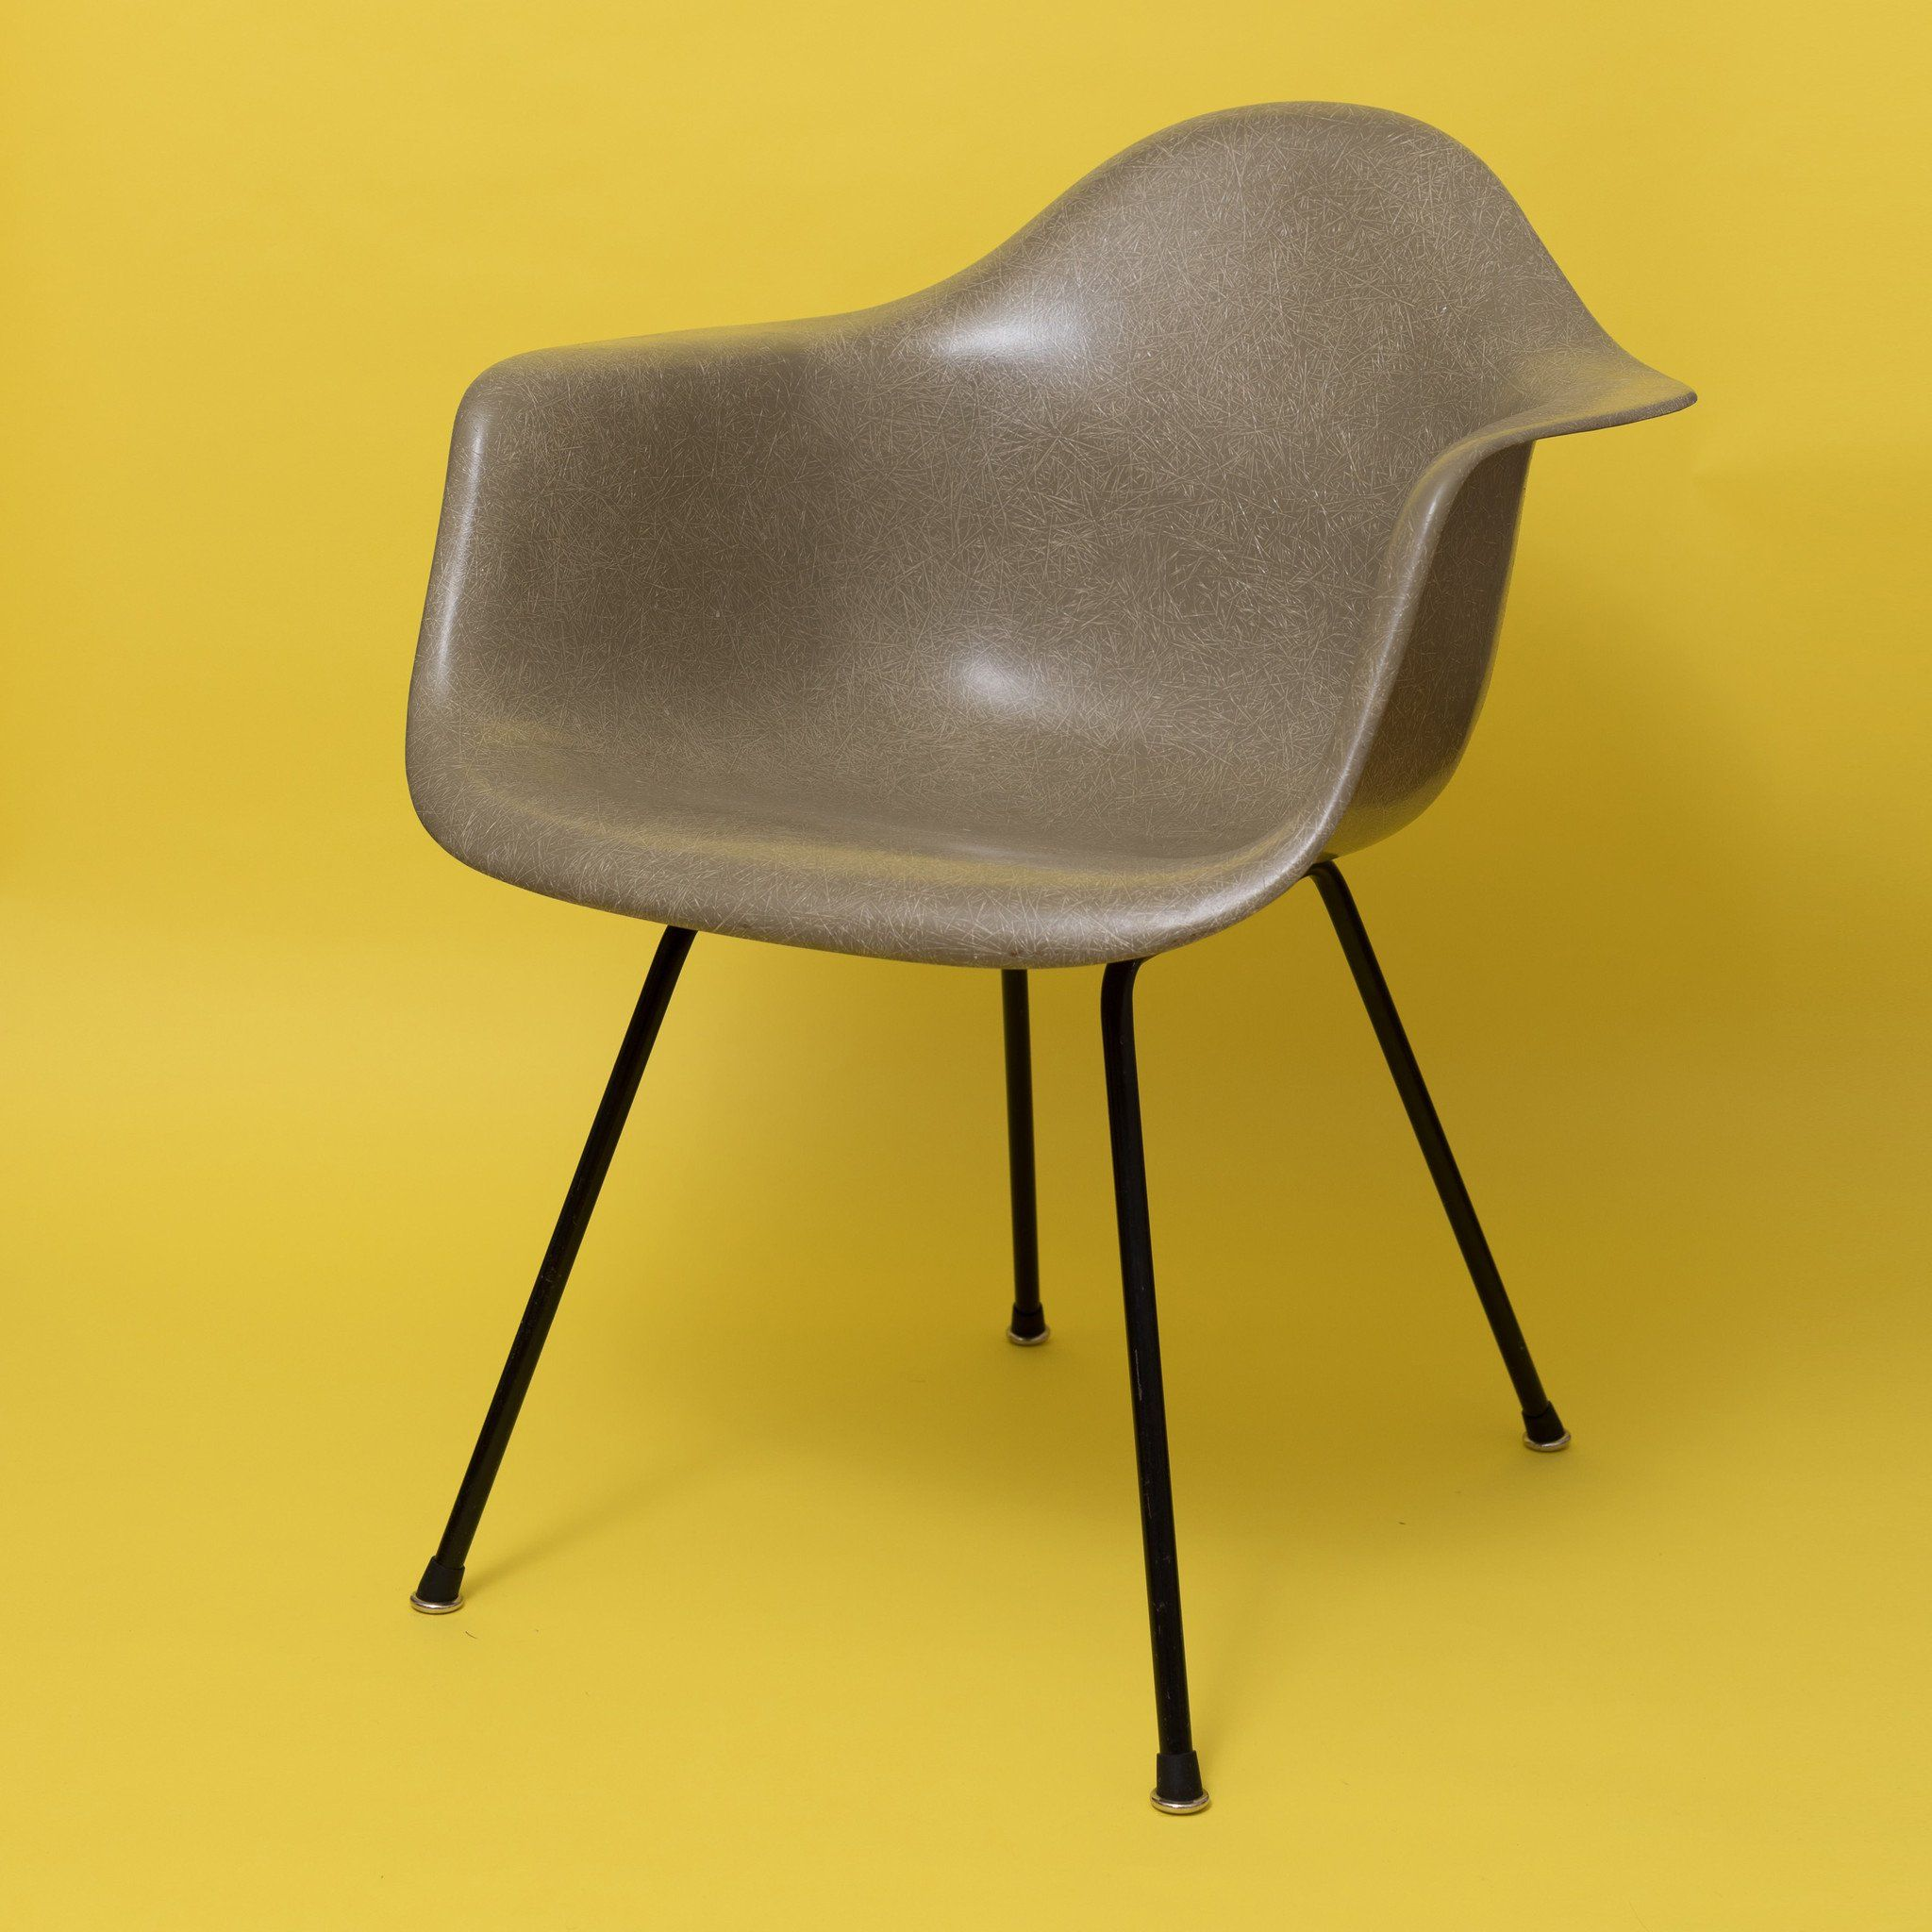 Raw umber Herman Miller DAX Eames chair Indretning